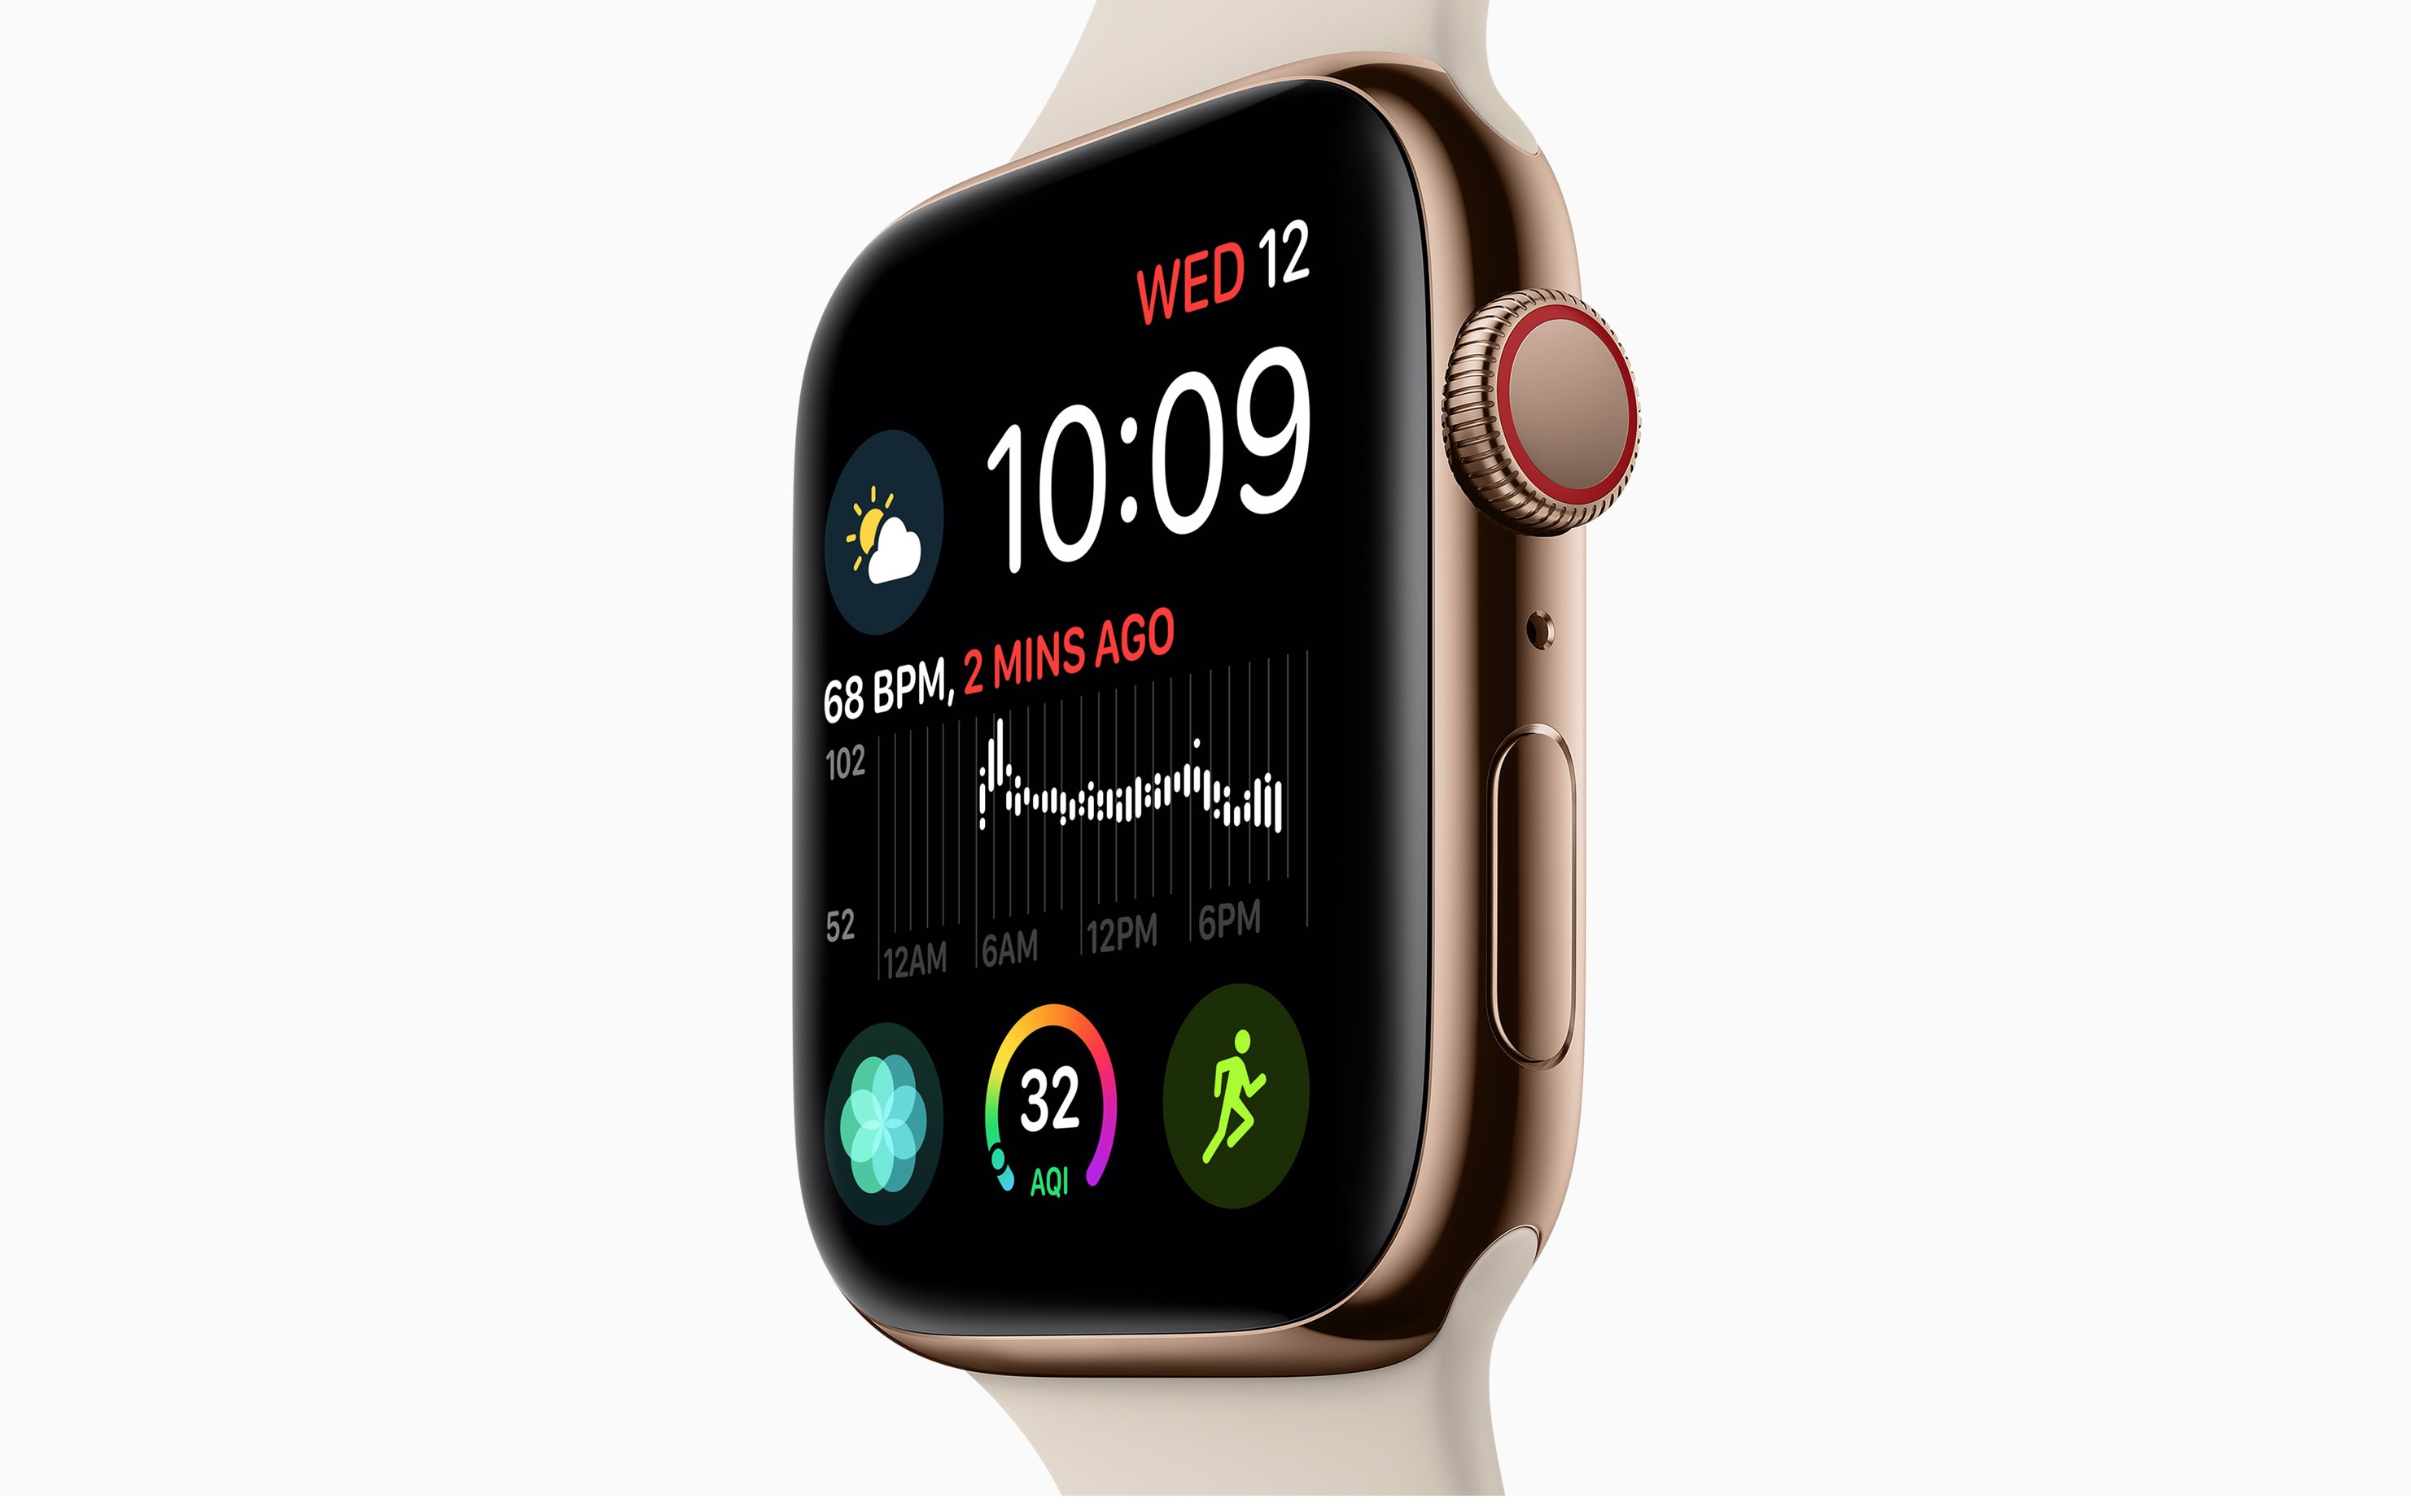 Apple Watch 4 ora con elettrocardiogramma: tutte le info